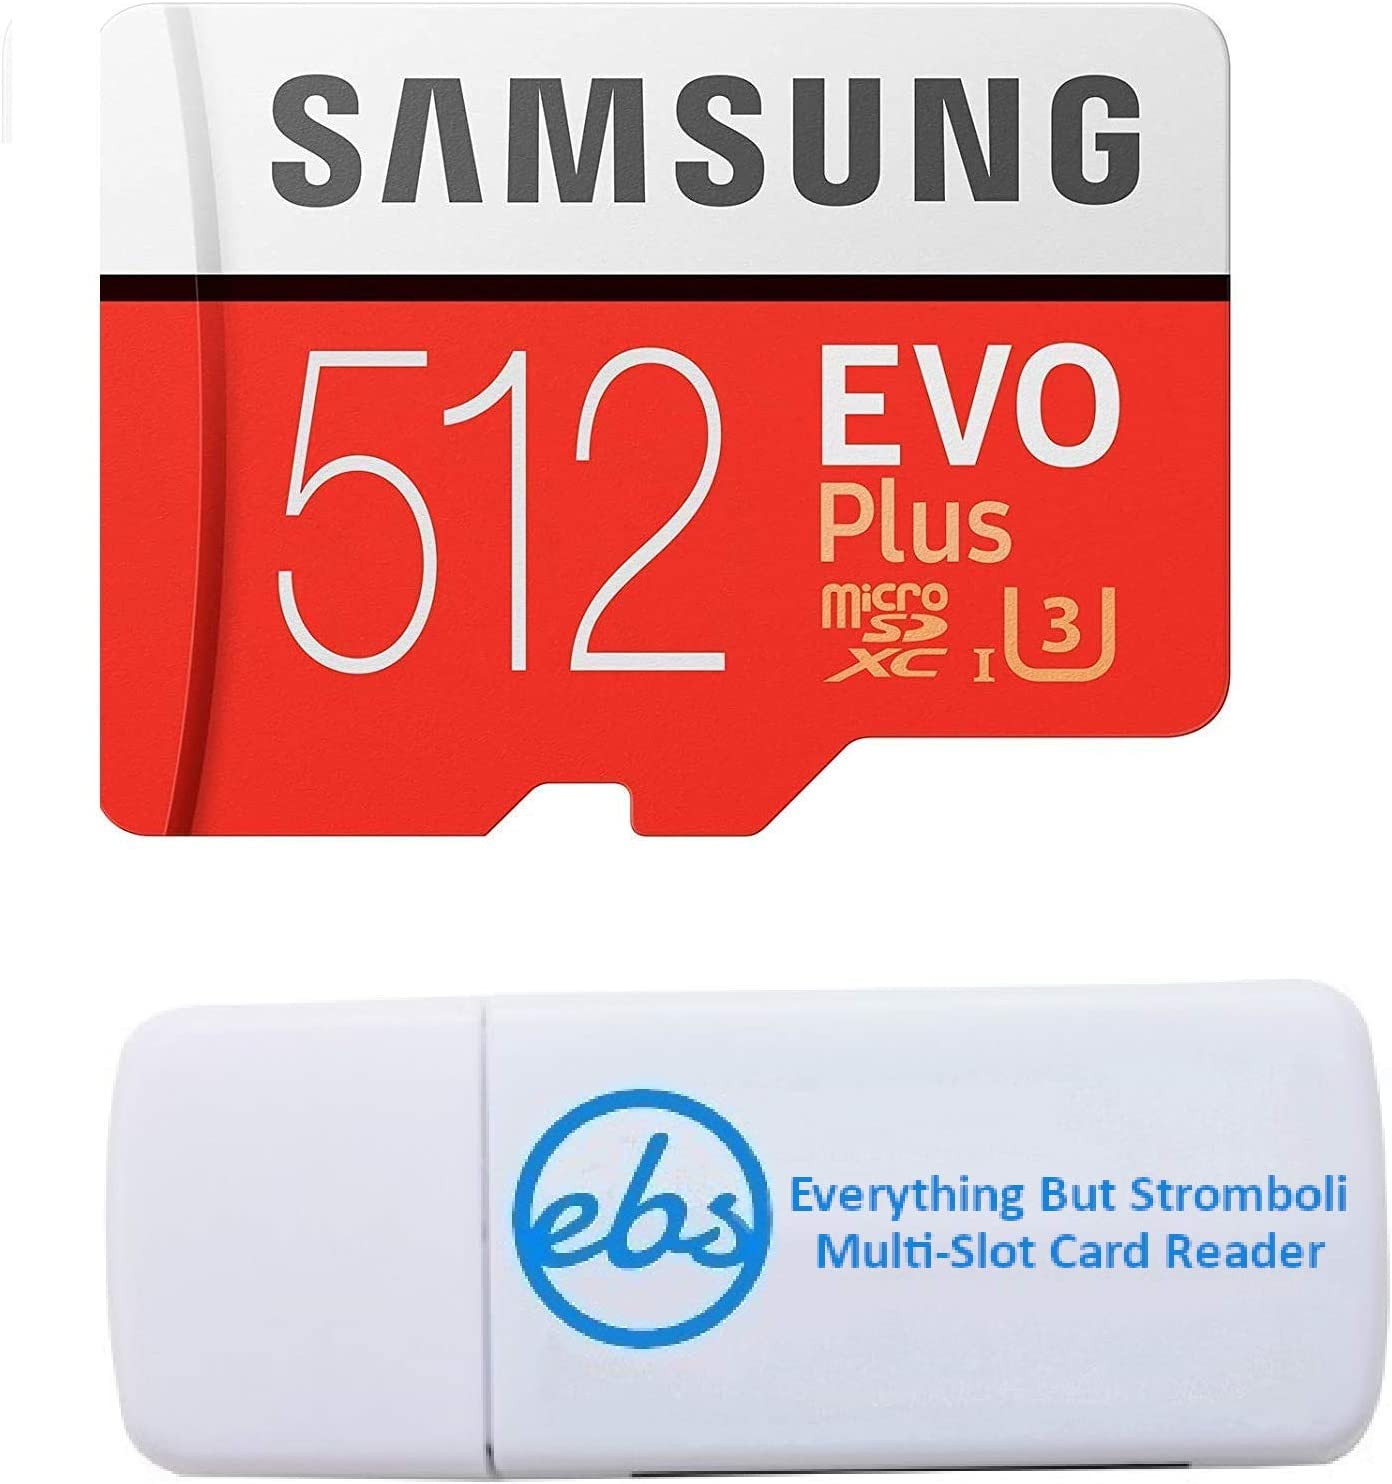 Samsung 512GB Micro SDXC EVO+ Plus Memory Card for Samsung Phone Works with Galaxy S20 Fan Edition, S20 FE 5G Cell Phone (MB-MC512G) Bundle with (1) Everything But Stromboli SD & MicroSD Card Reader